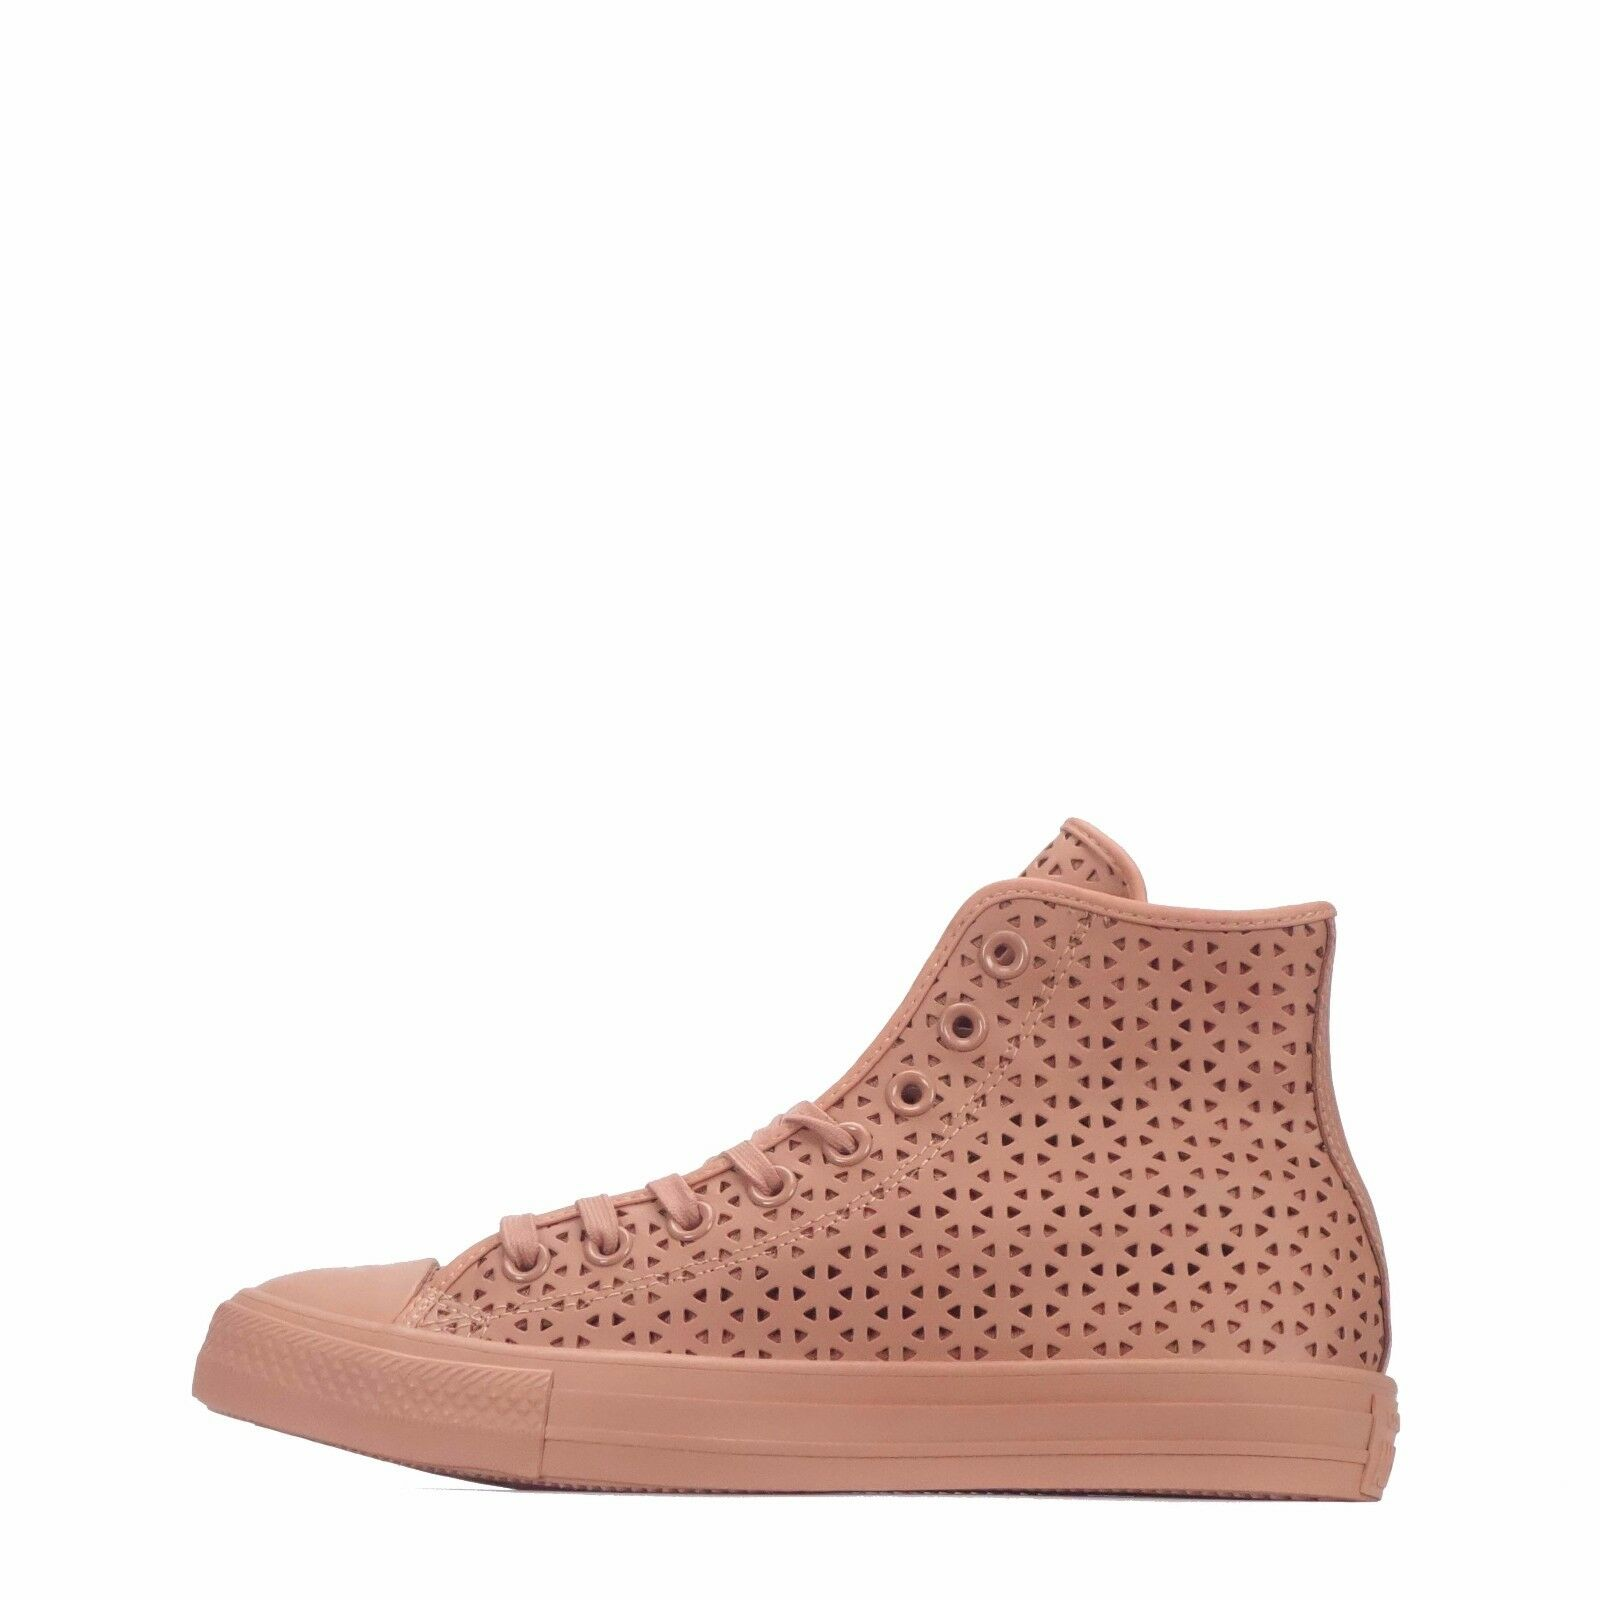 Converse Chuck Taylor All Star Hi Perforated Women's shoes Pink bluesh